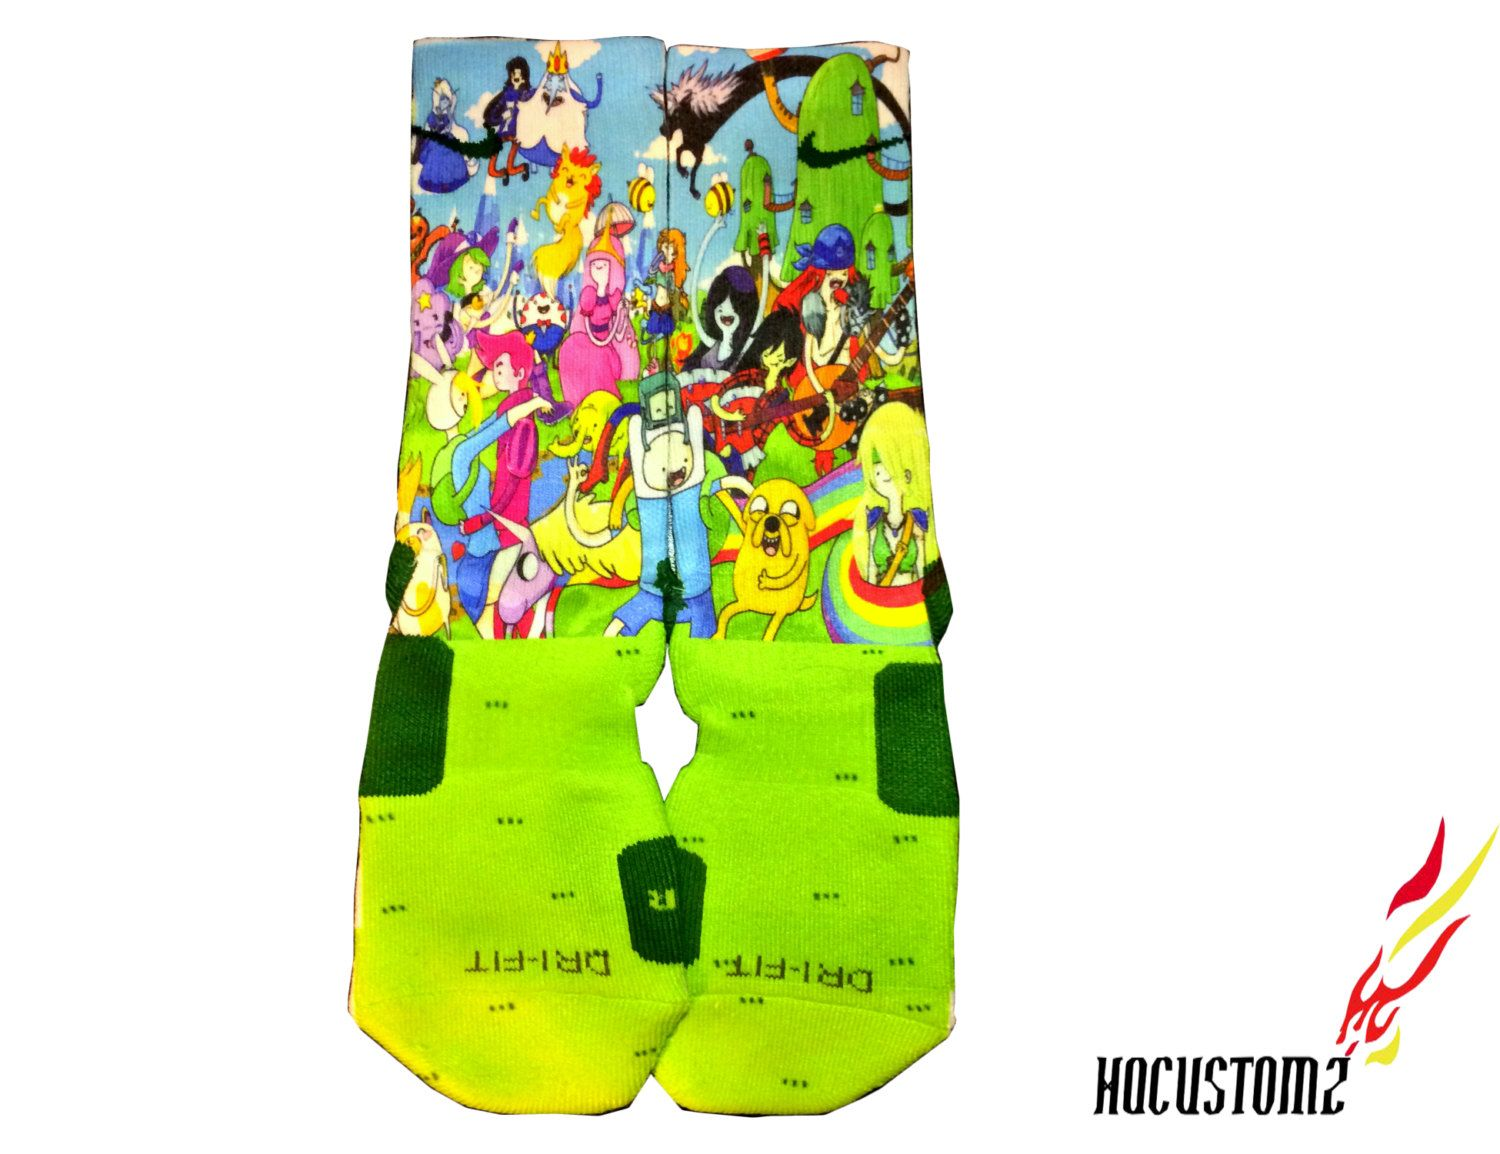 Adventure Time Custom Nike Elite Socks ALL SIZES by HQcustomz, $29.94 - Adventure Time Custom Nike Elite Socks ALL SIZES By HQcustomz